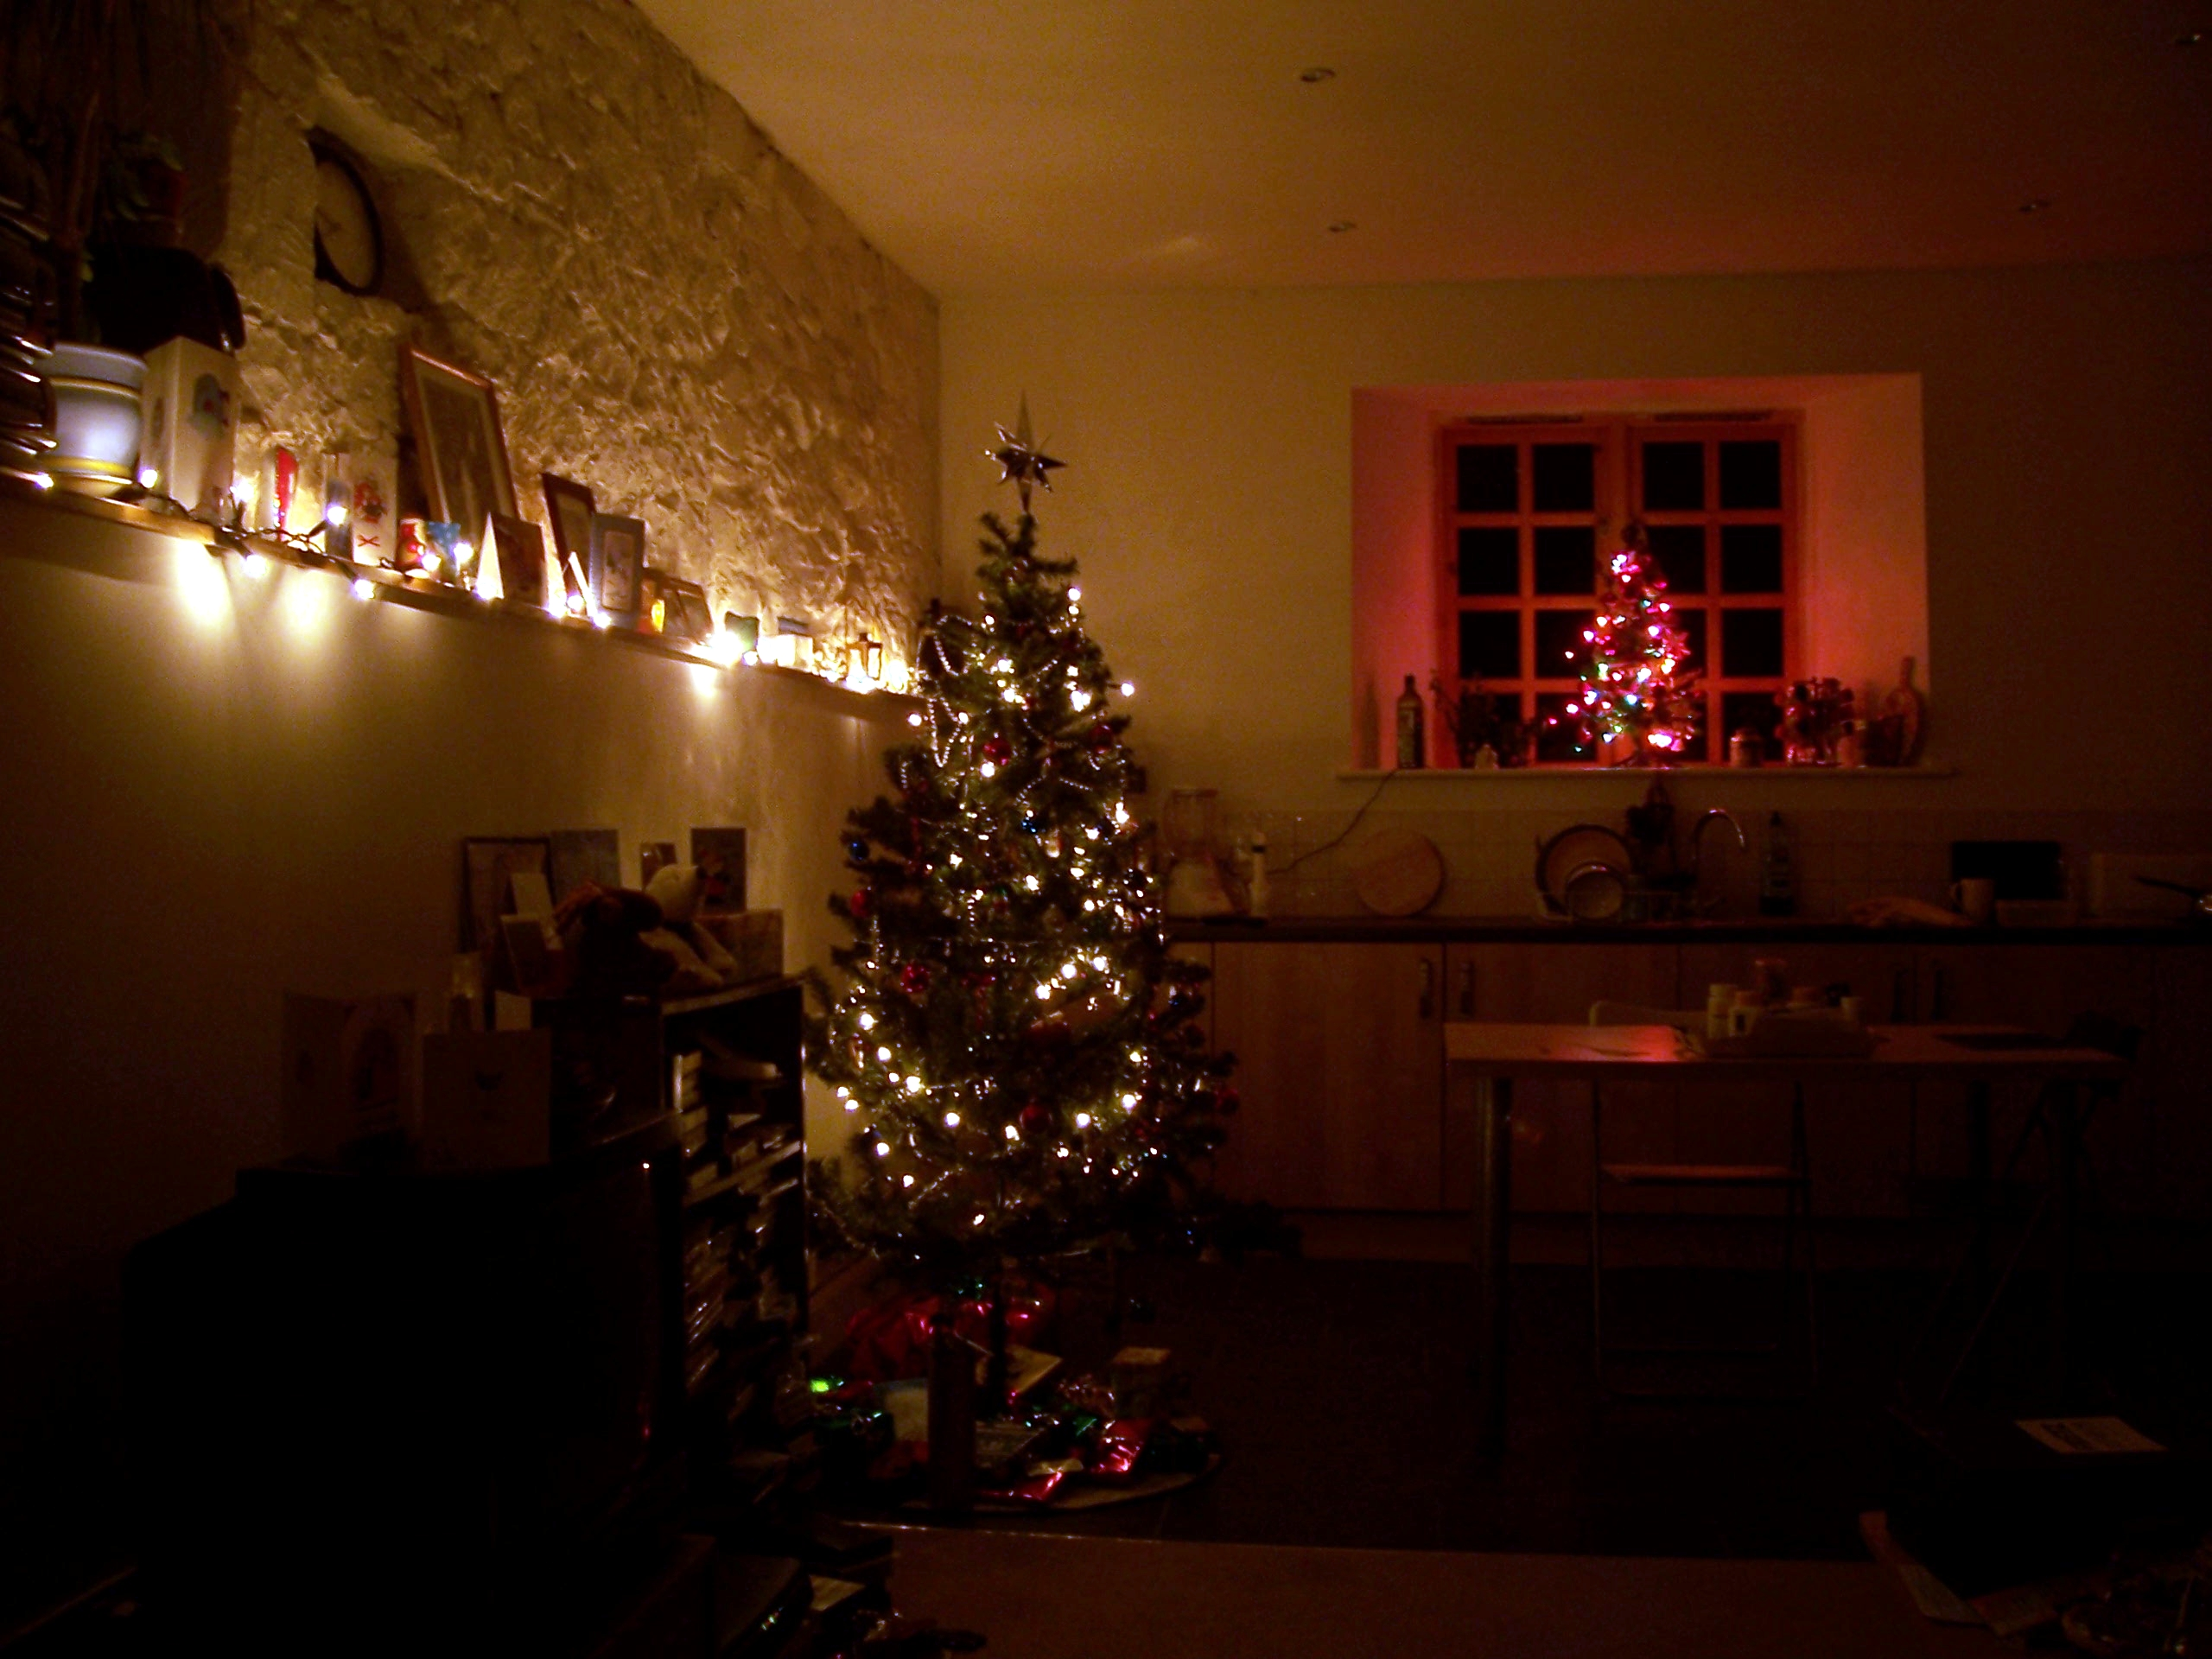 How to decorate my room for christmas - Photo Of My Christmas Decorations In 2005